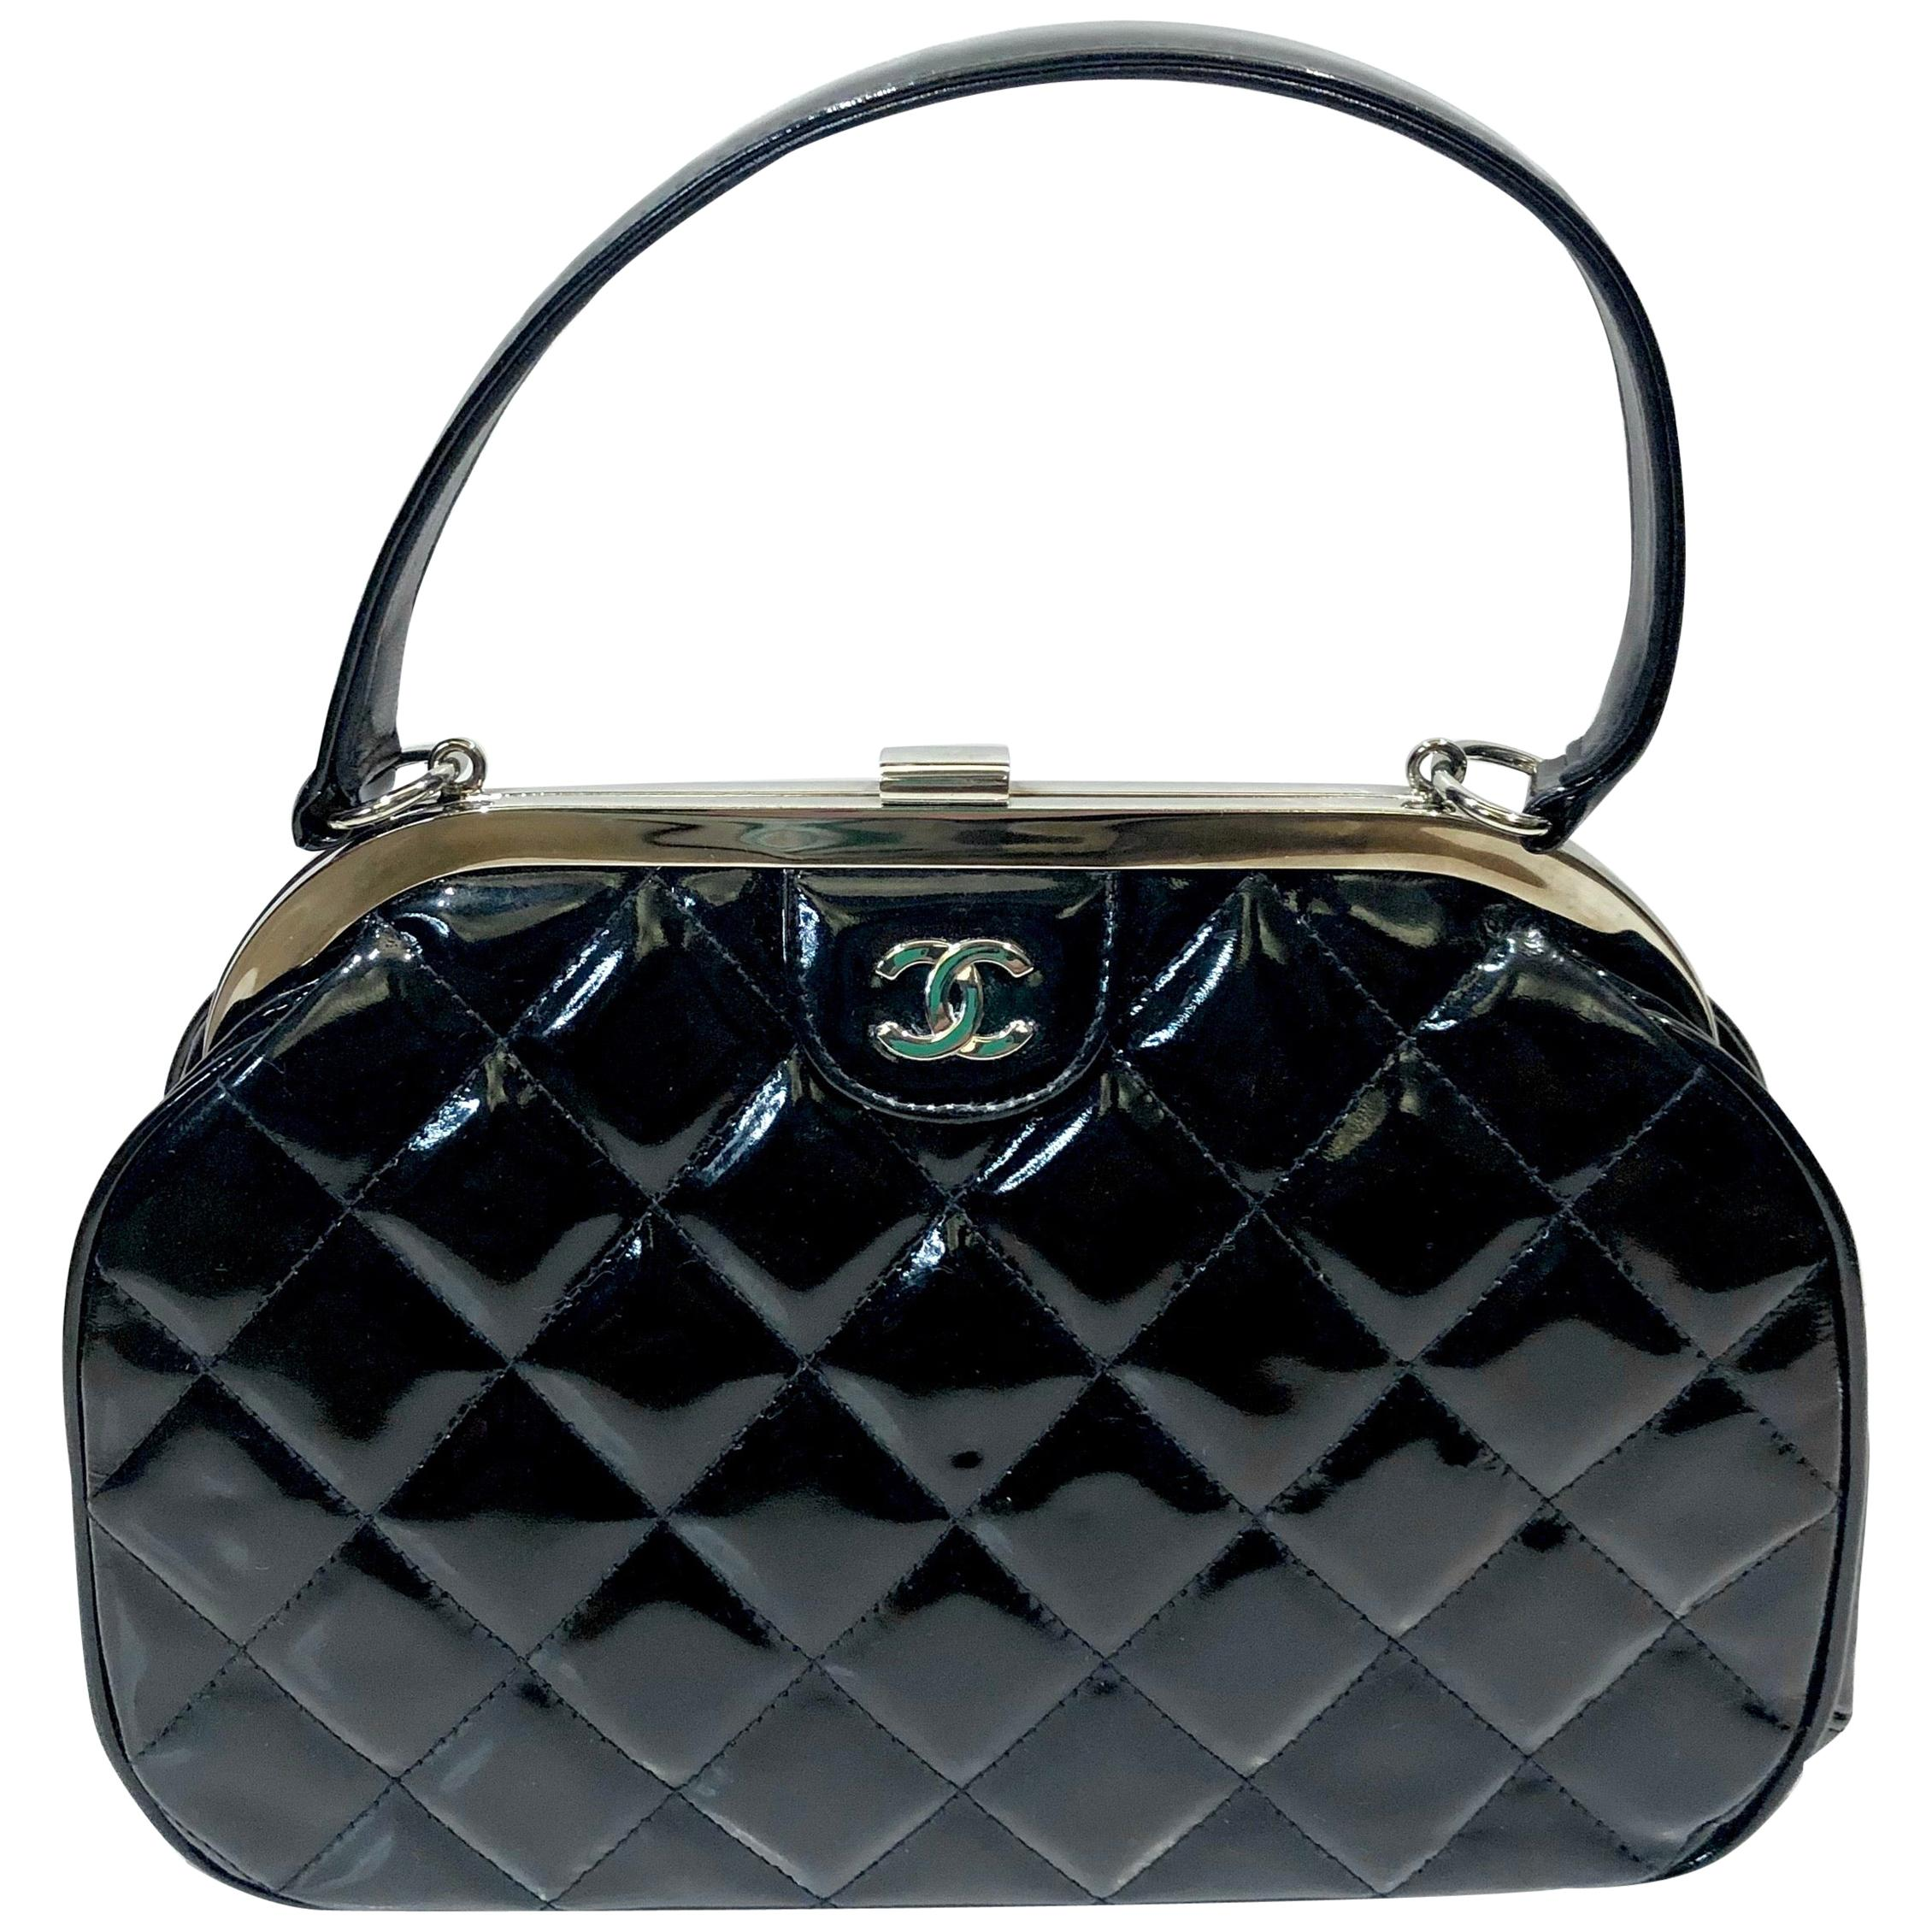 Vintage 90s Chanel Classic Black Quilted Patent Handbag